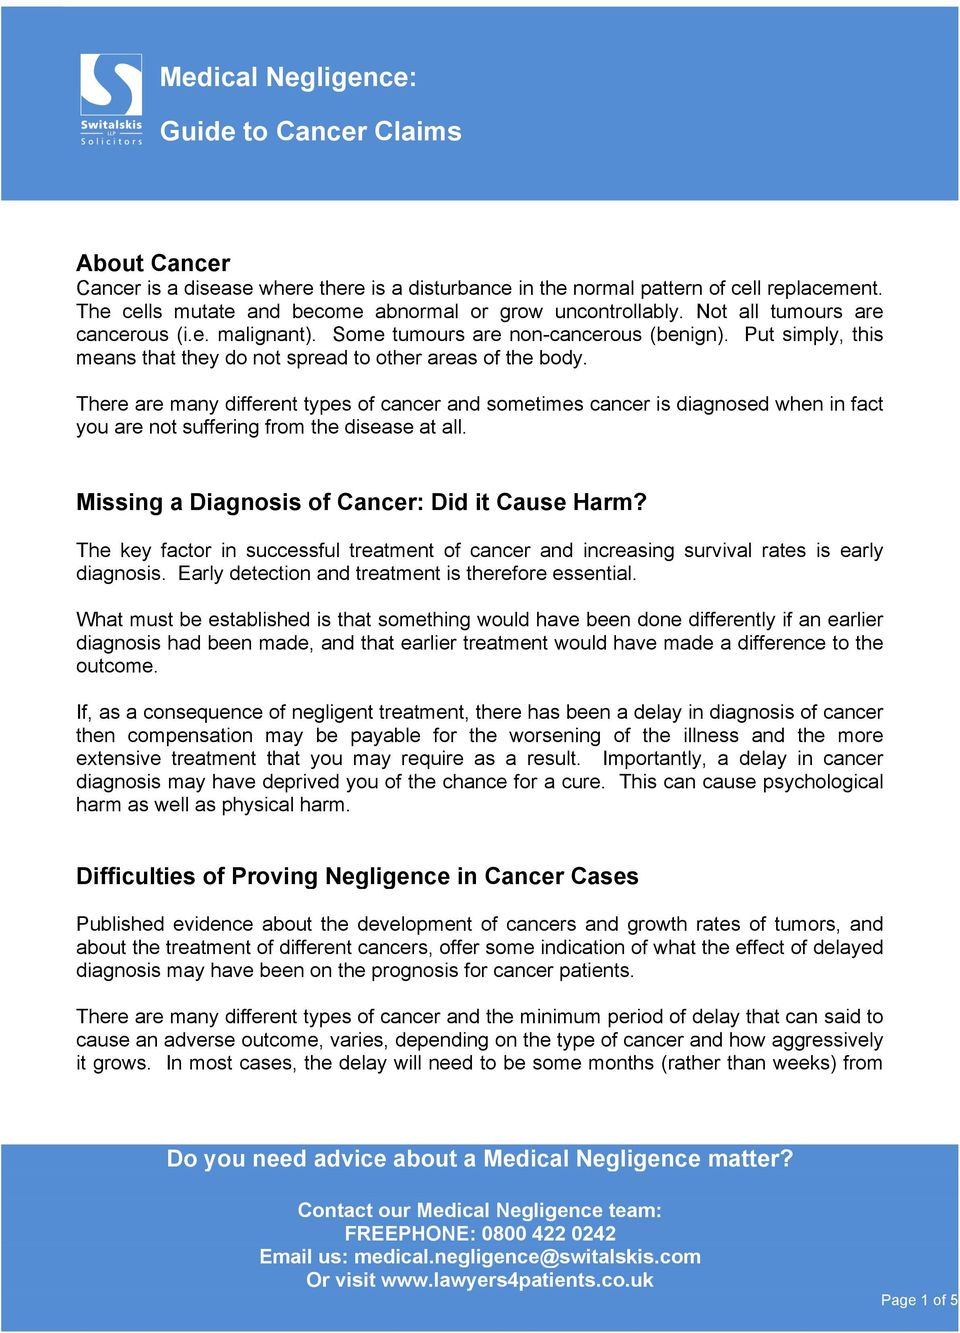 There are many different types of cancer and sometimes cancer is diagnosed when in fact you are not suffering from the disease at all. Missing a Diagnosis of Cancer: Did it Cause Harm?